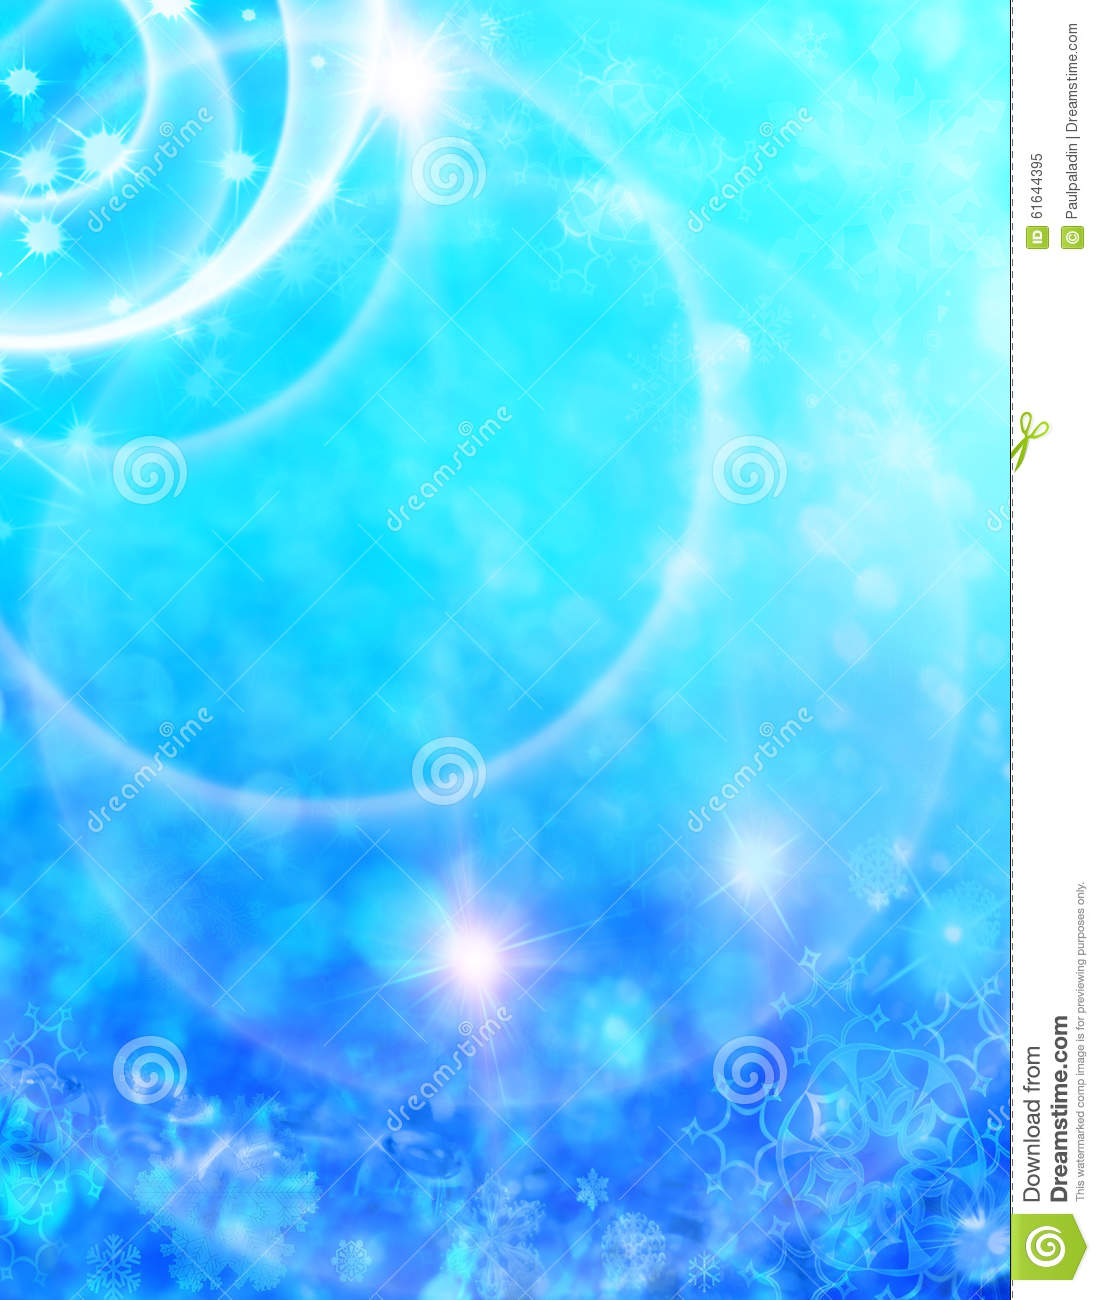 abstract christmas background with shiny stars snowflakes in blue and white color new year lights starry sky